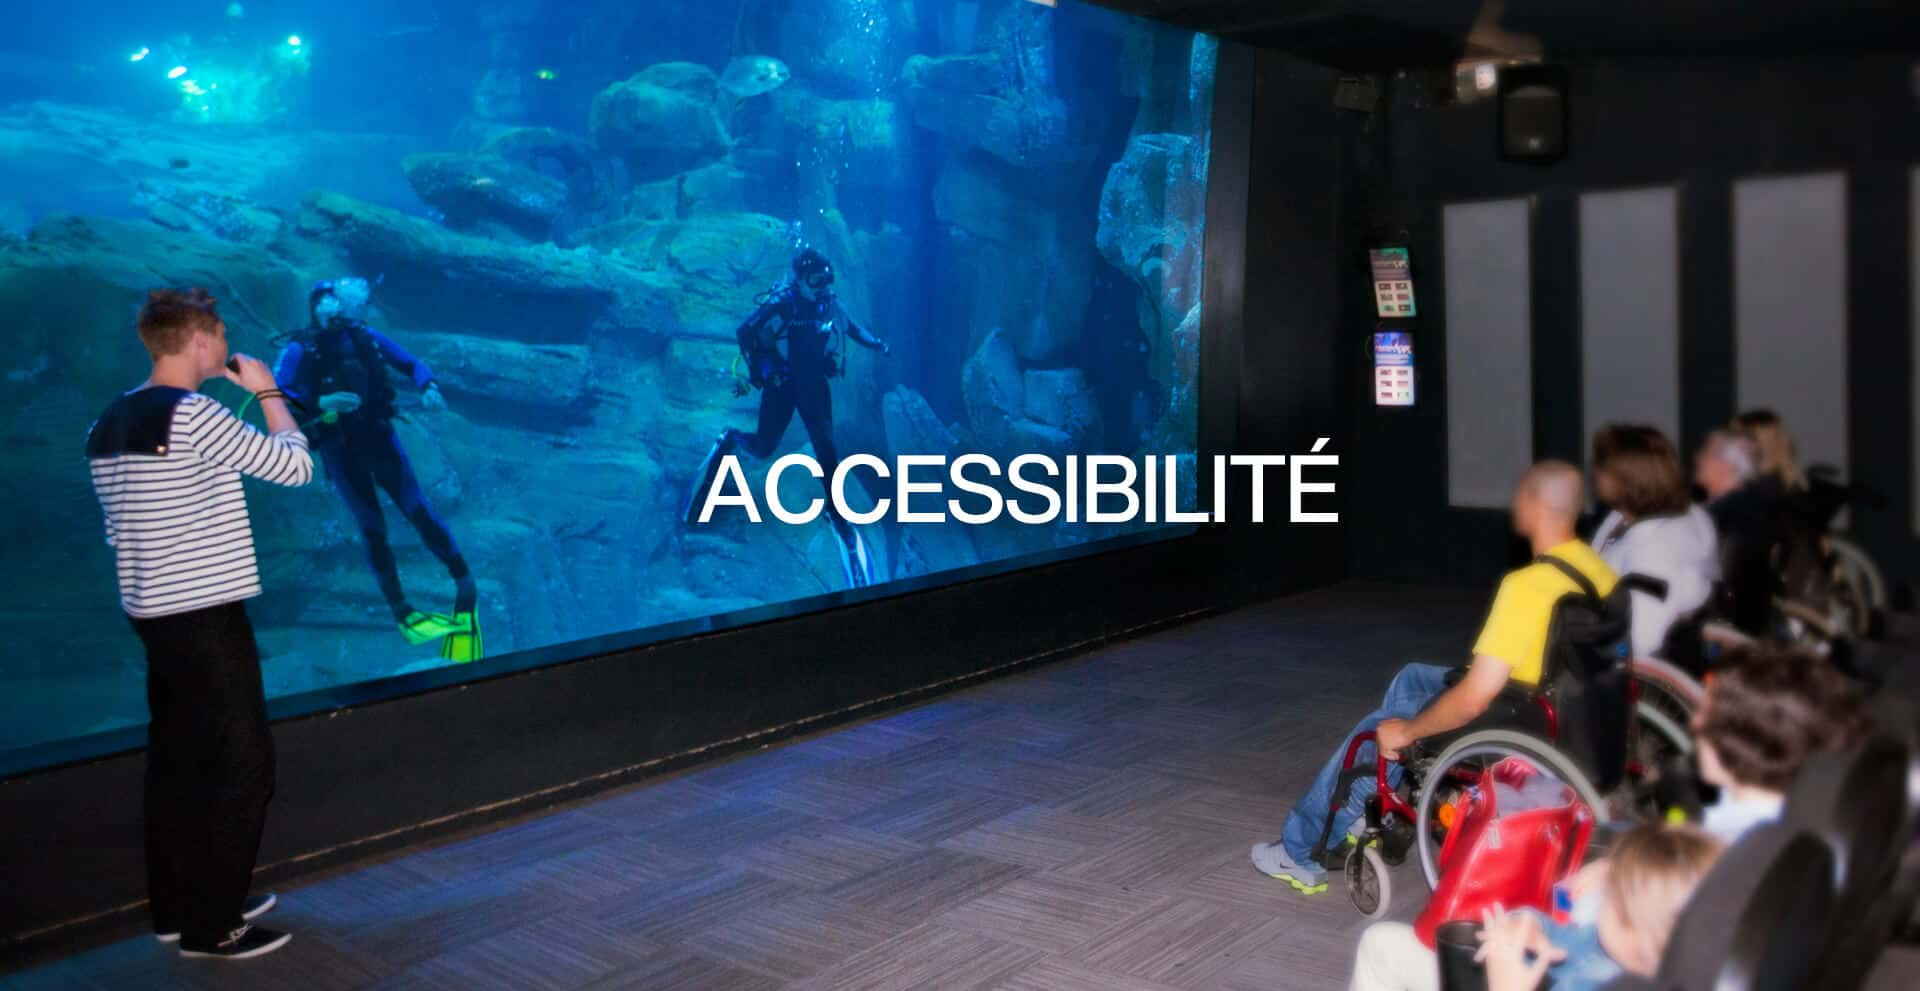 Accessibilité - Aquarium de Paris